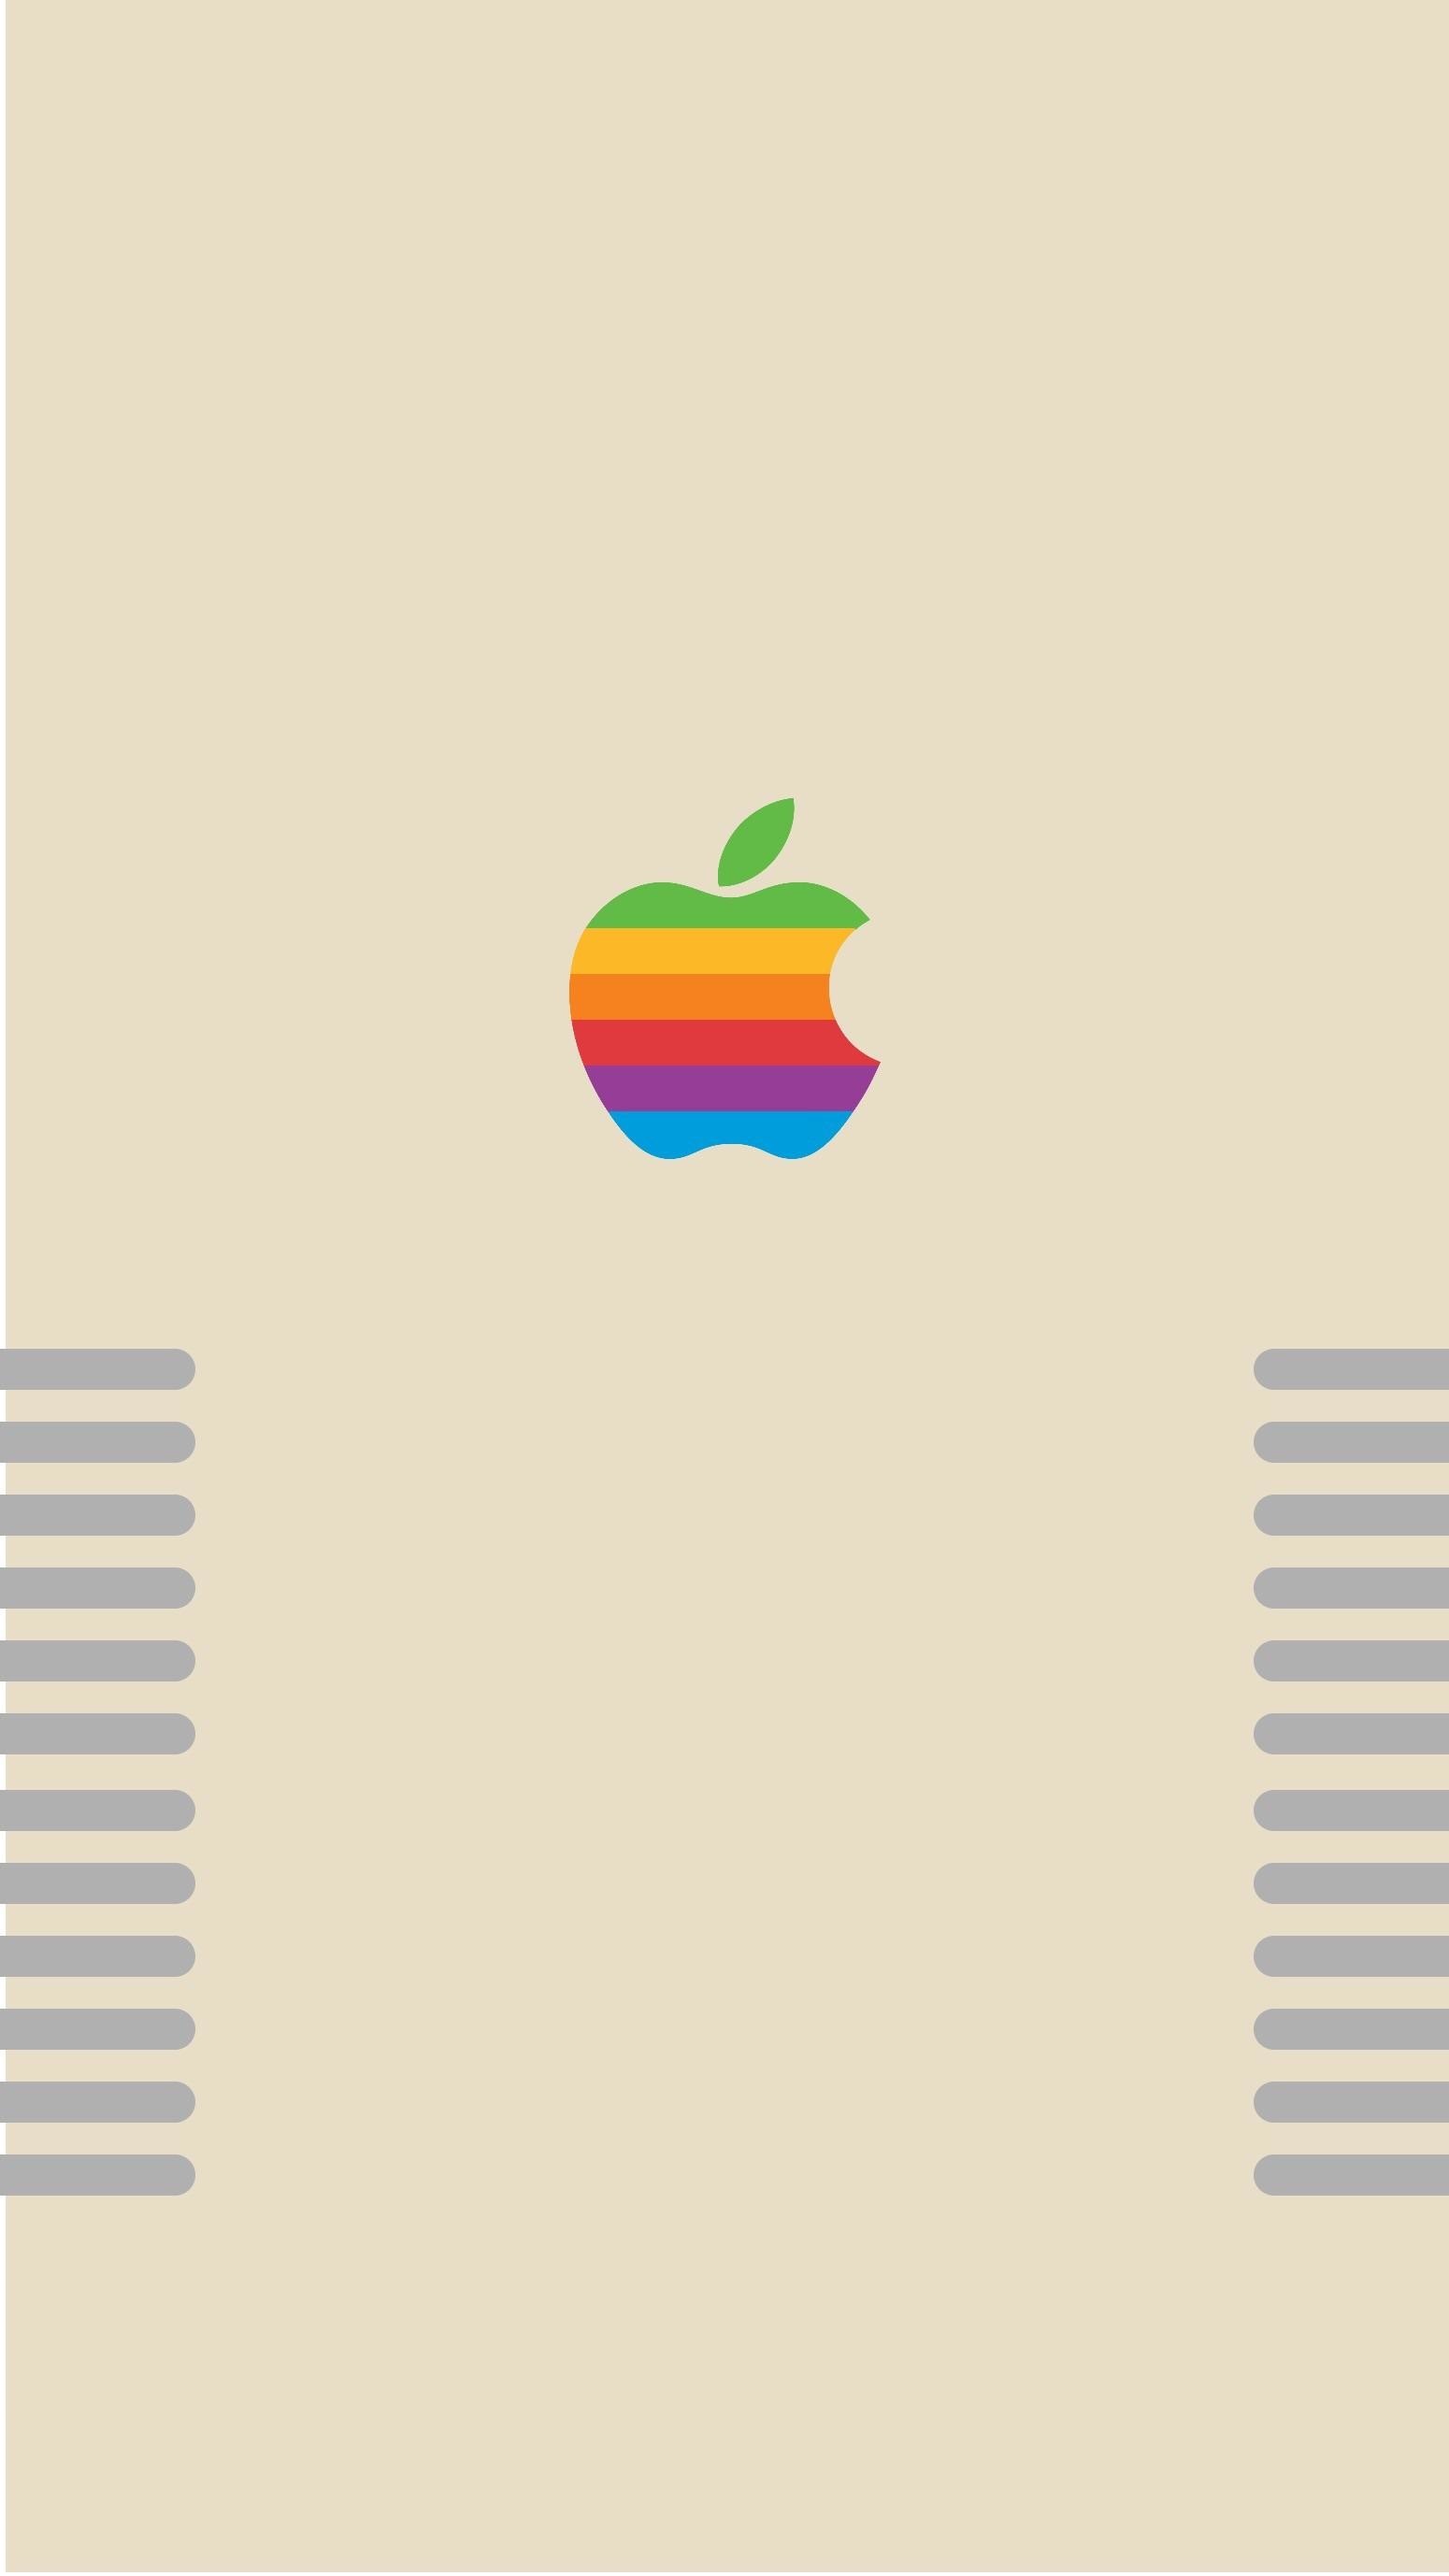 Retro Iphone Wallpapers 76 Images